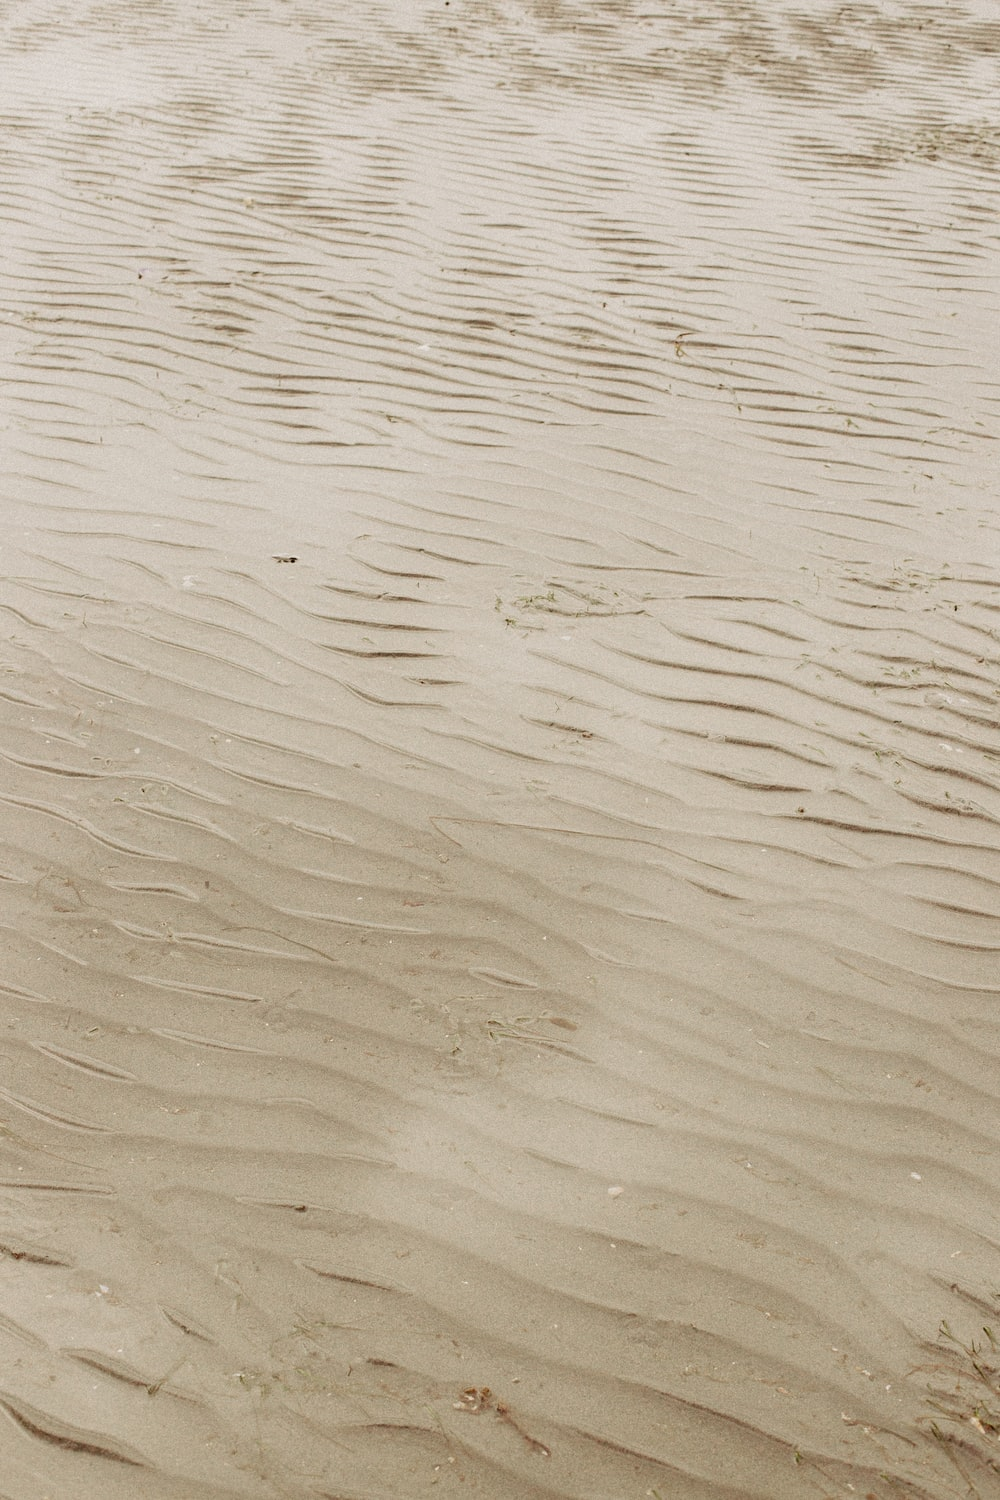 brown sand with water during daytime